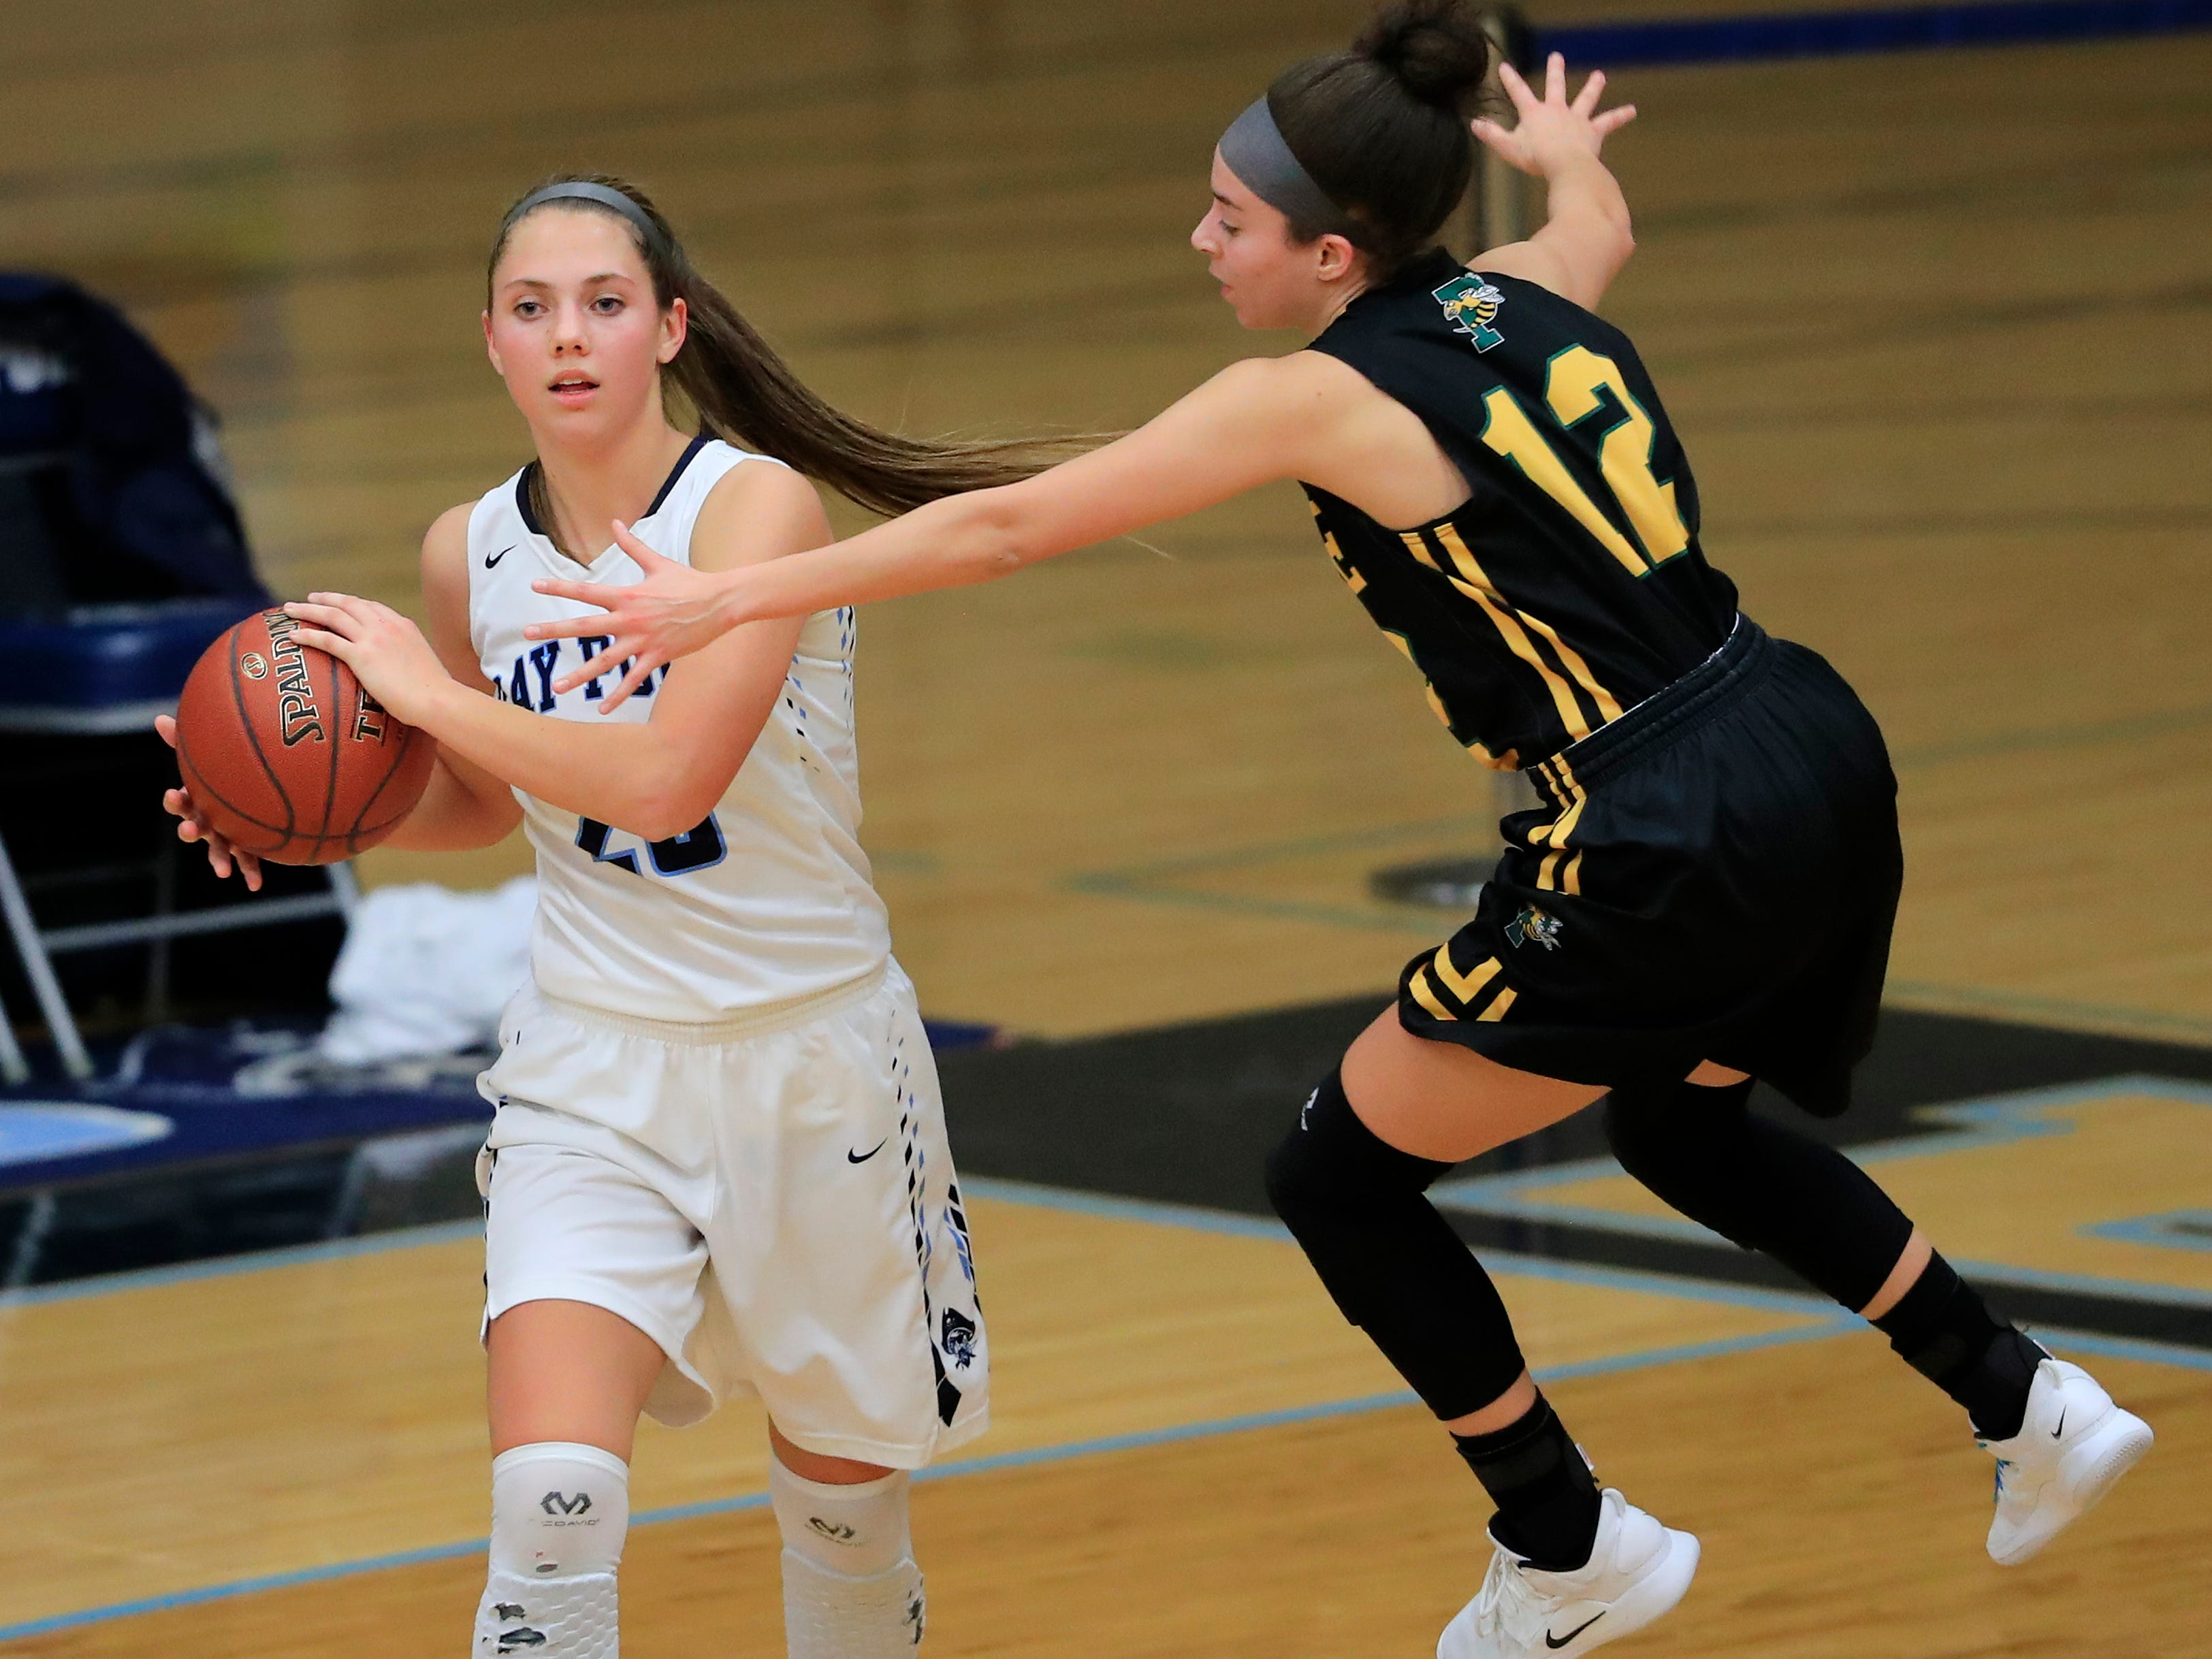 Green Bay Preble's Hannah Beauchamp (12) guards Bay Port's Emma Nagel (23) in a FRCC girls basketball game at Bay Port high school on Friday, February 8, 2019 in Suamico, Wis.